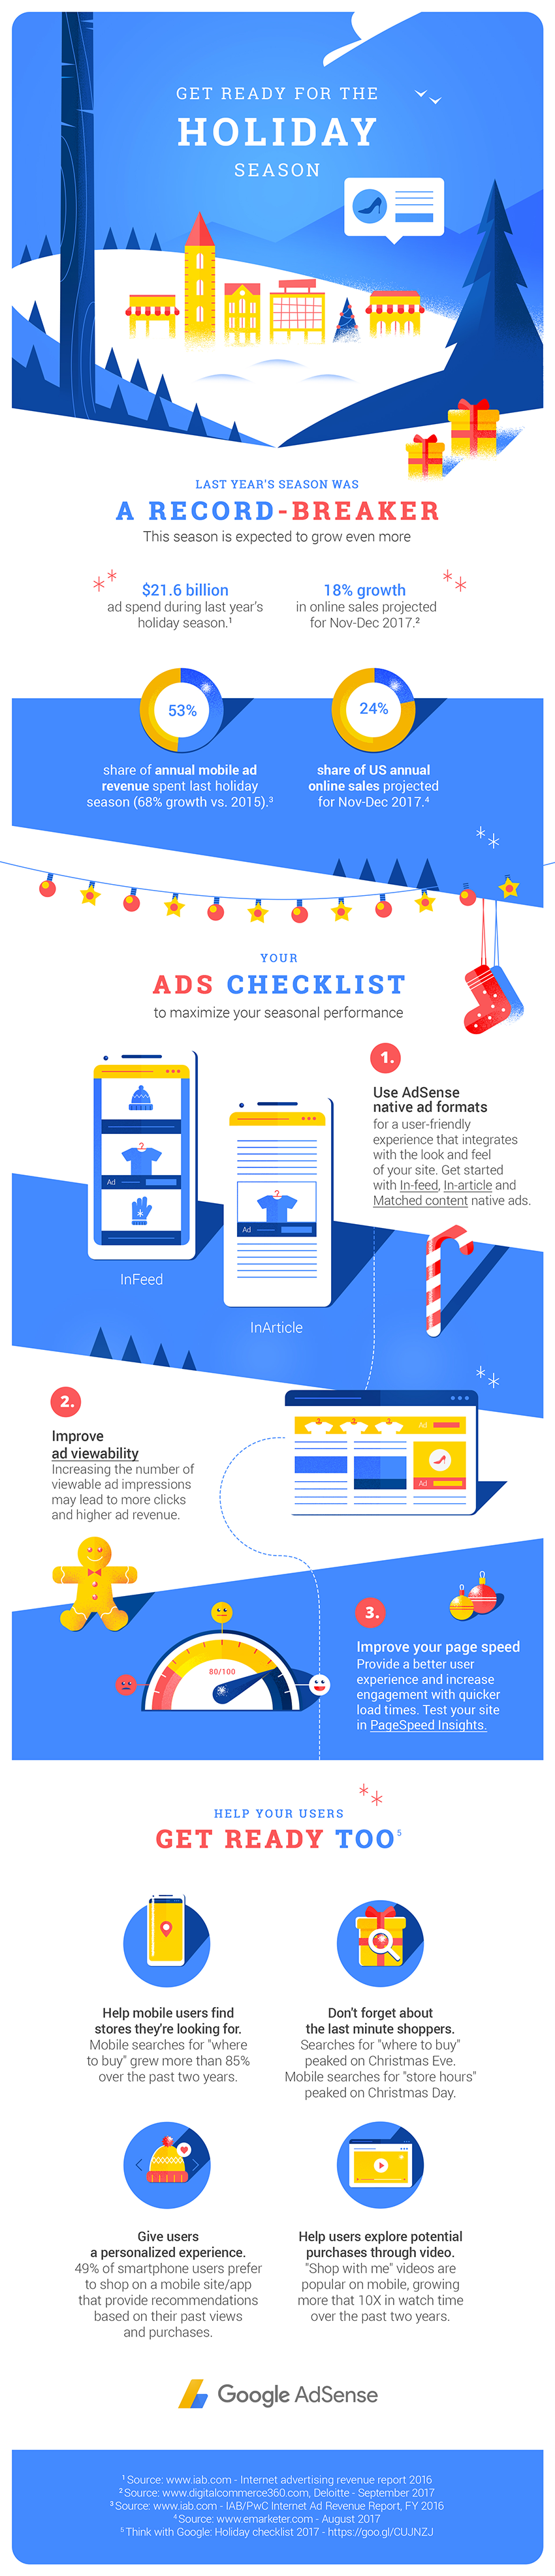 Grasp Google Adsense with These three Suggestions (INFOGRAPHIC)